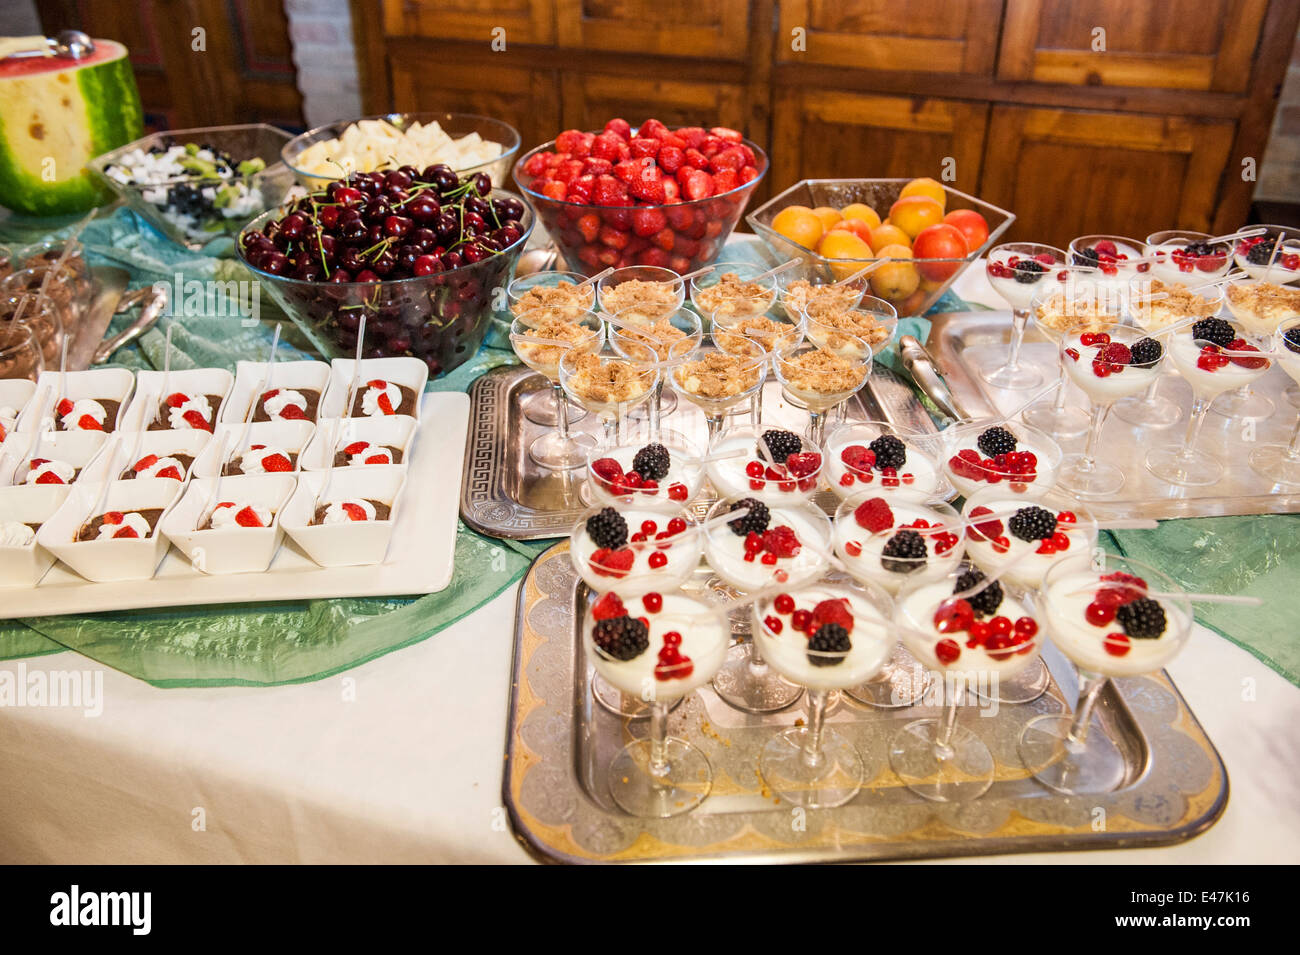 ein dessert buffet bei einer hochzeit besteht aus kleinen proben von kuchen fingerfood und. Black Bedroom Furniture Sets. Home Design Ideas